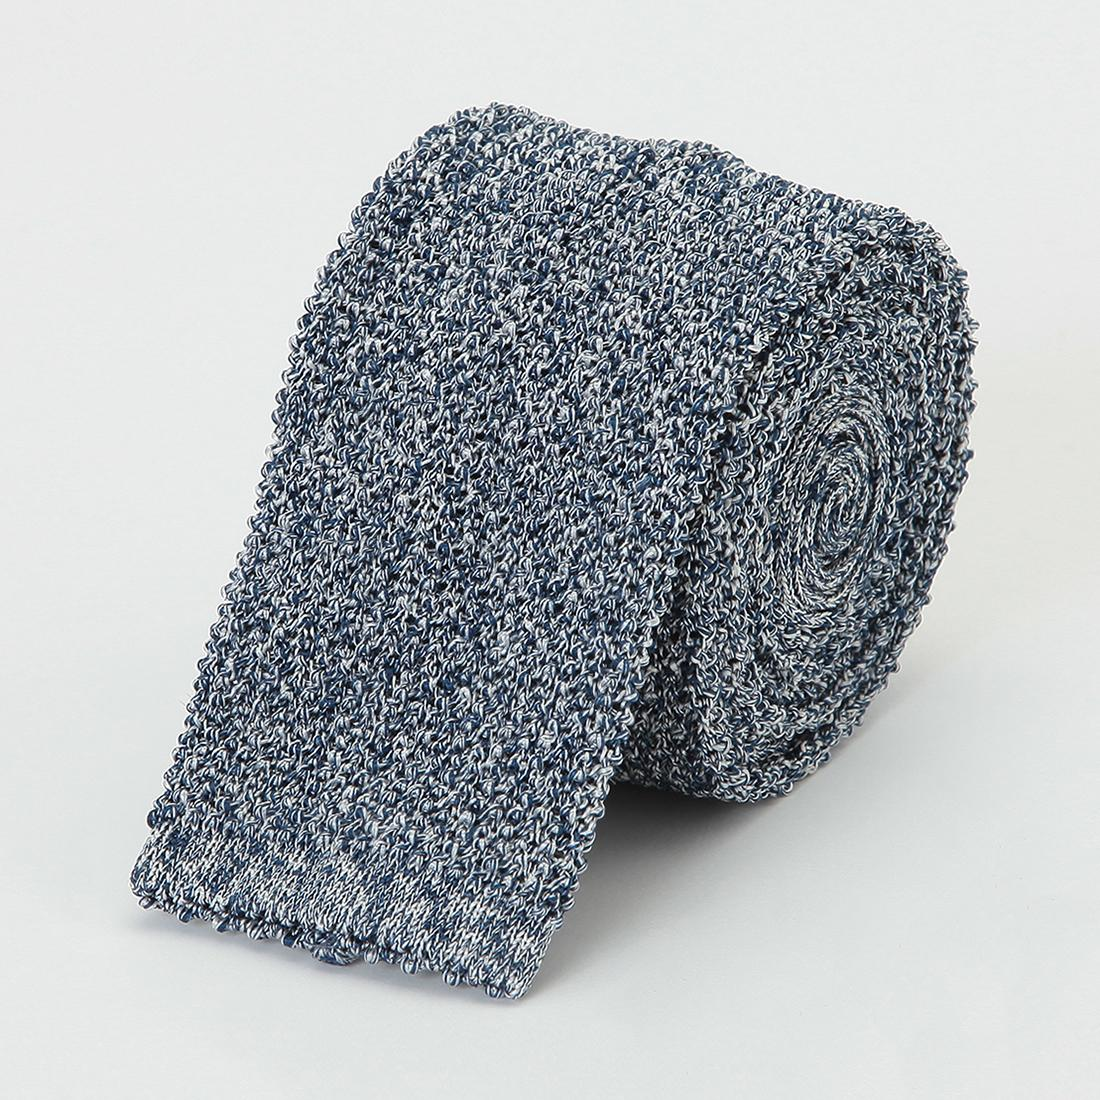 Barneys New York Silk Melange Knit Tie 2011115: Blue